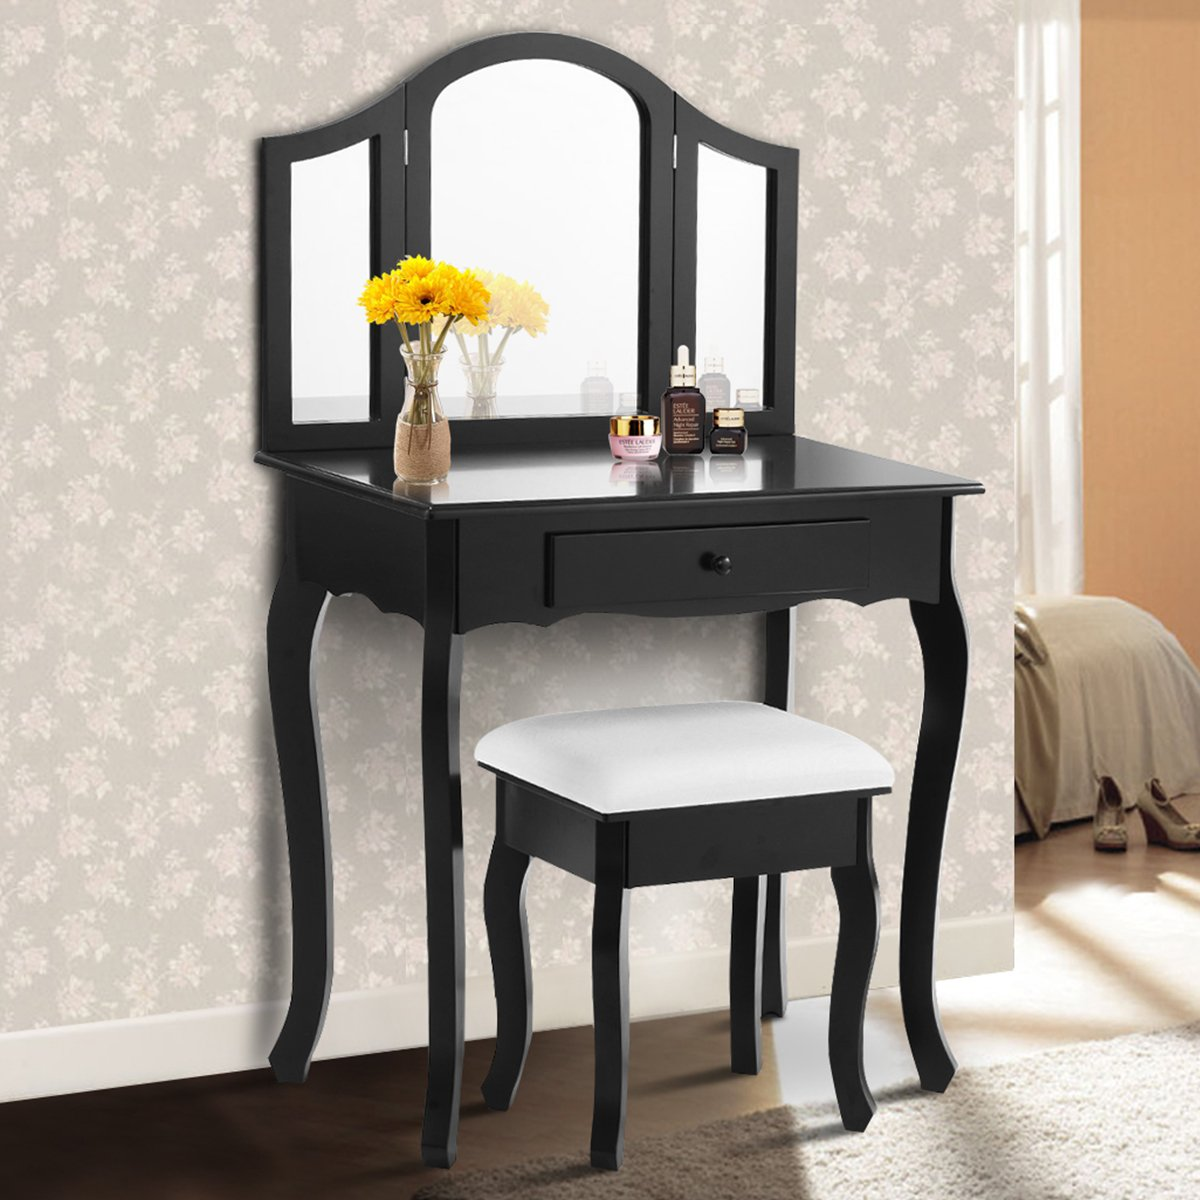 Giantex Bathroom Vanity Makeup Table Set w/ Tri-folding Mirror & Cushioned Stool Dressing Table (Black